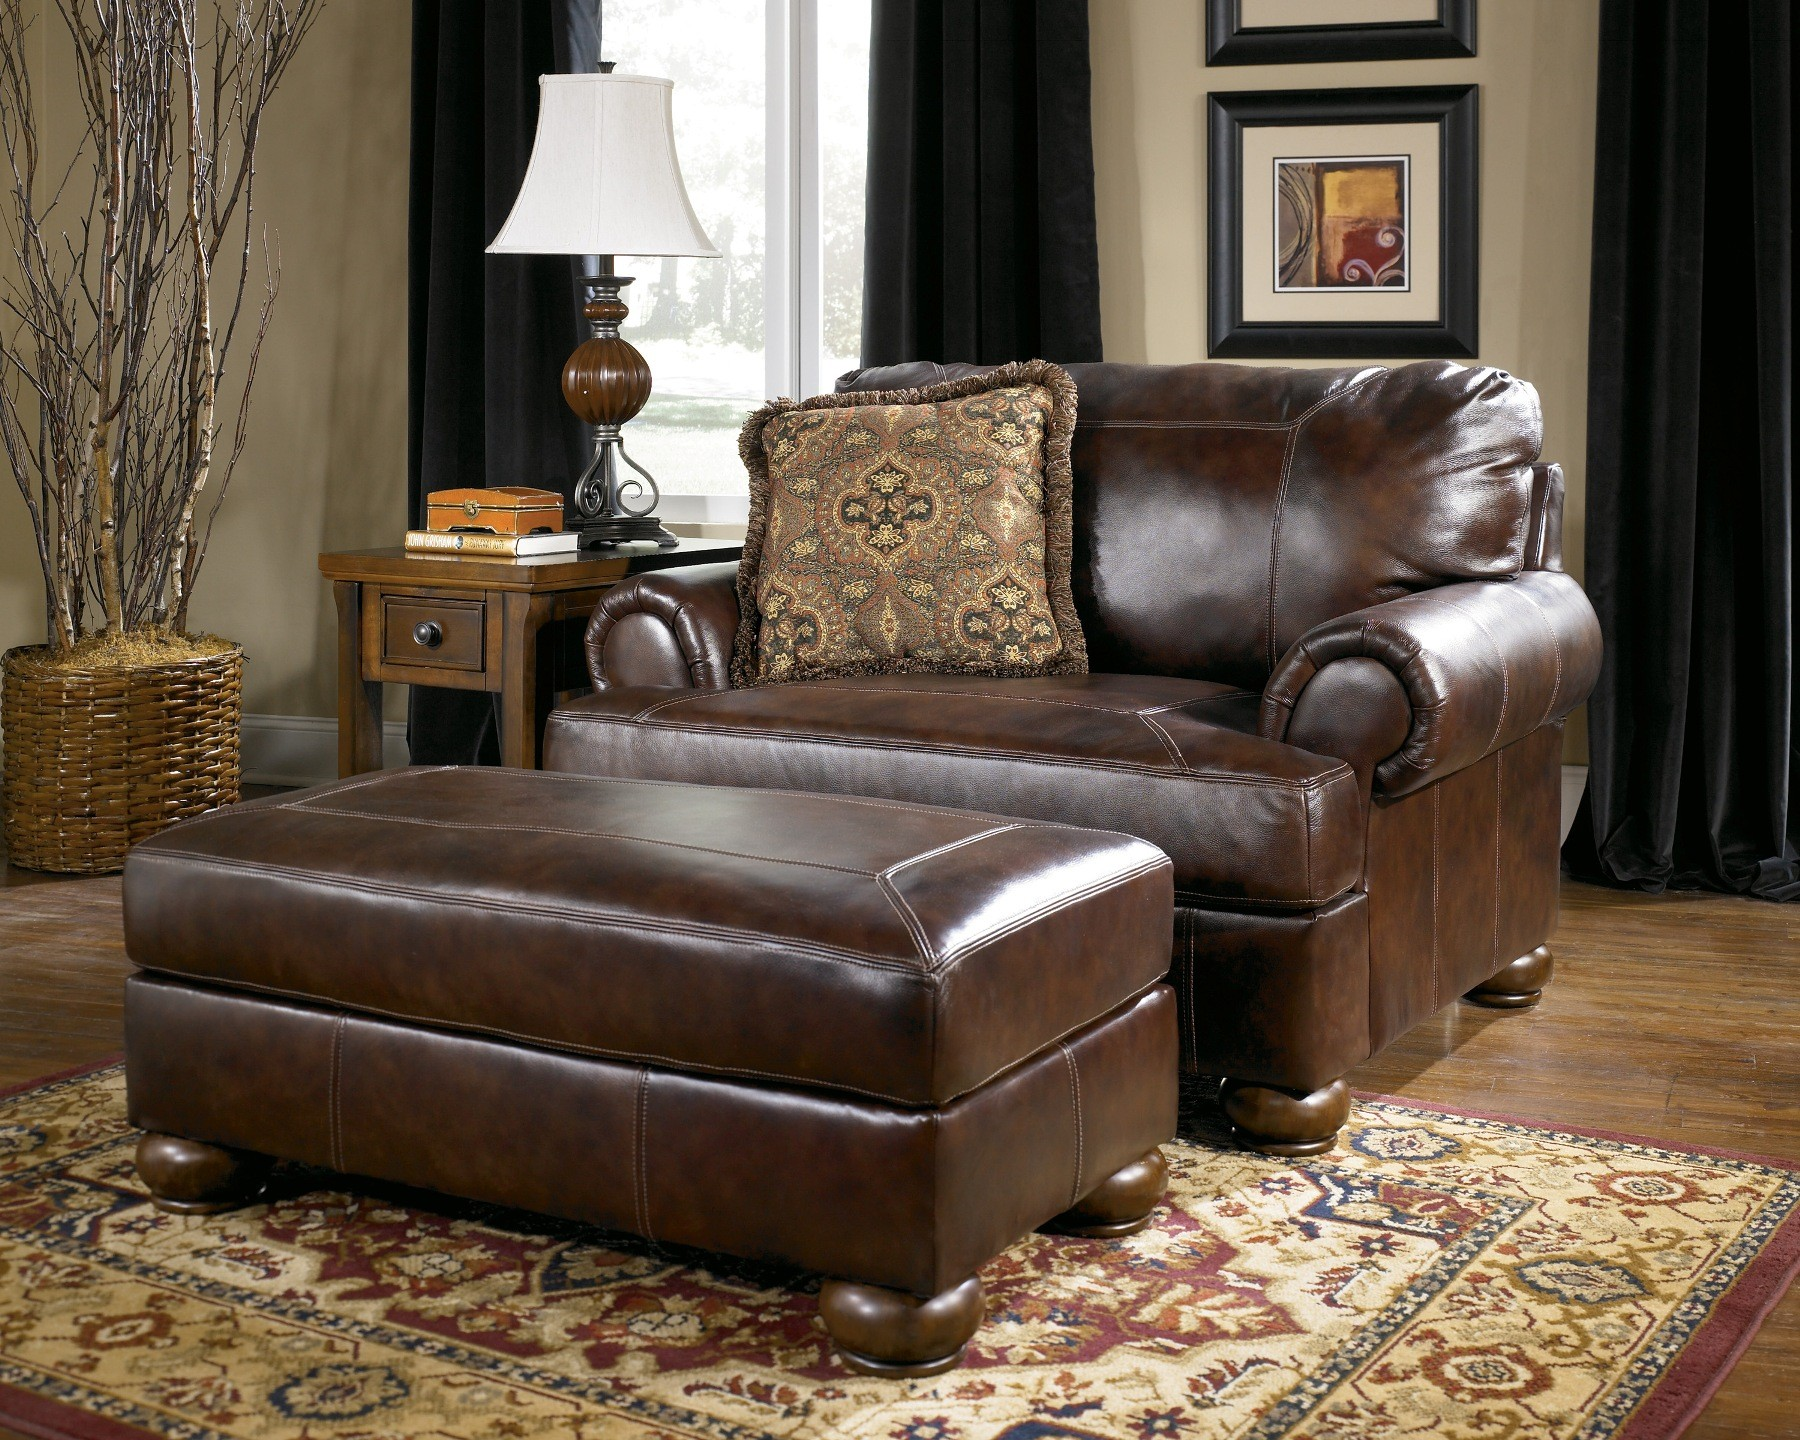 Axiom walnut living room set from ashley 42000 coleman furniture